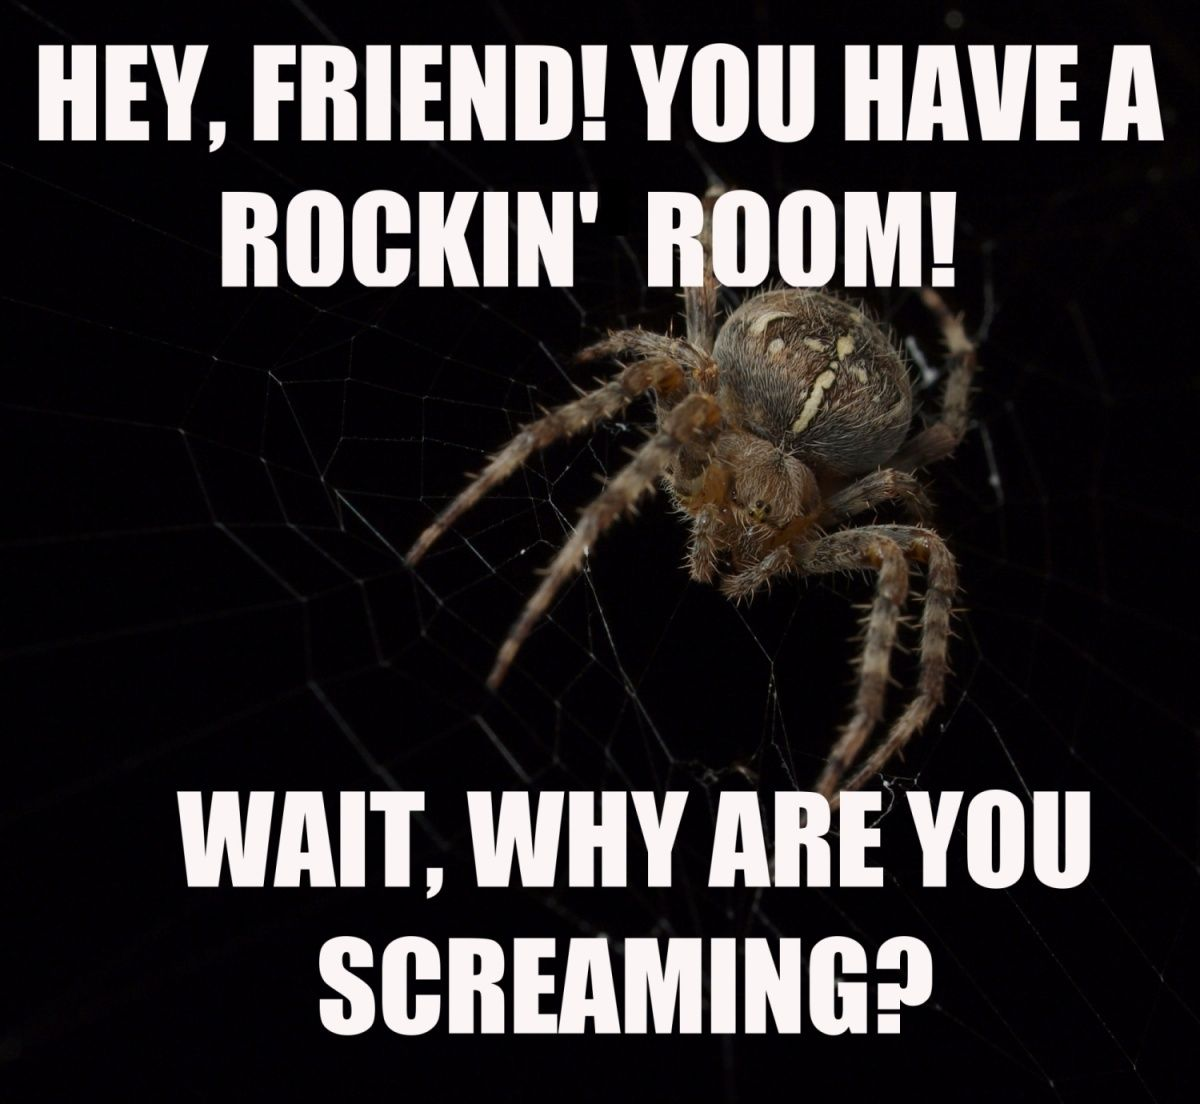 Giant scary spiders memes - photo#36